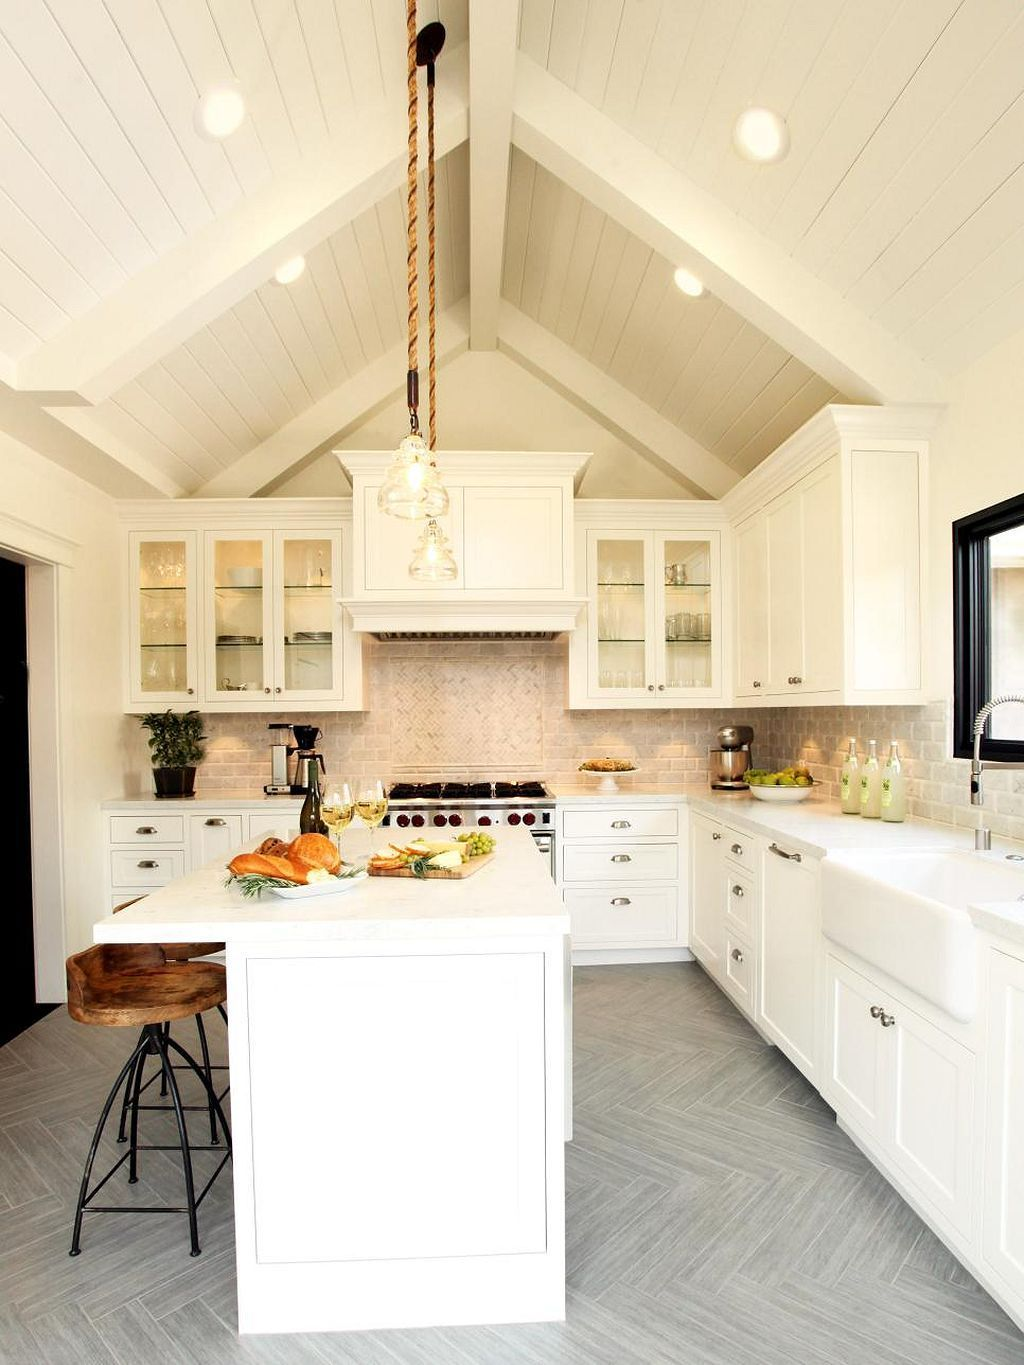 Farmhouse kitchen decoration ideas kitchen decorations ideas